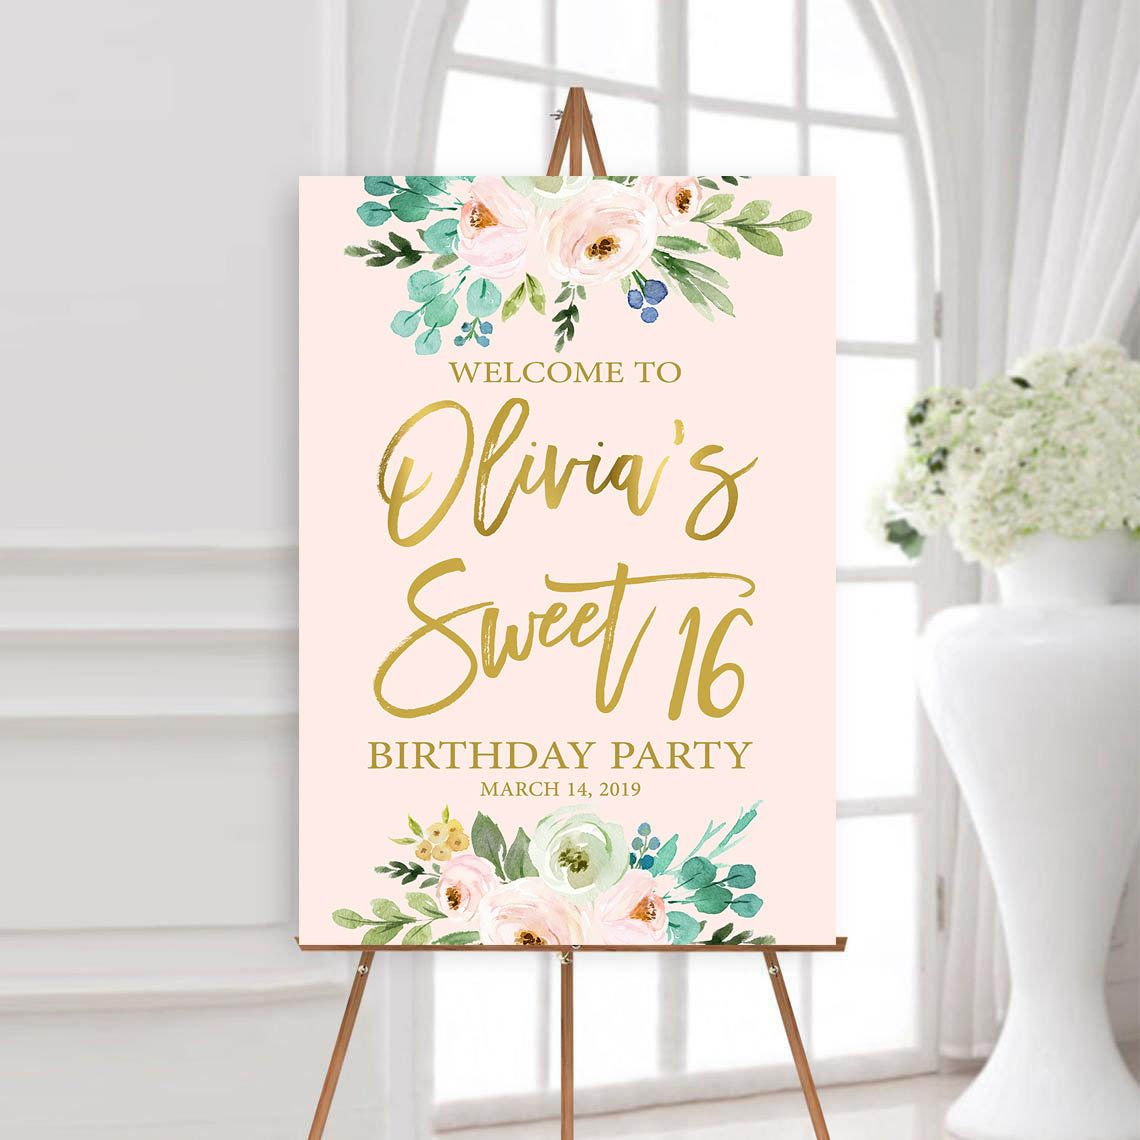 Sweet 16 Birthday Welcome Sign Printable Sweet Sixteen Party Sign Large Welcome Poster You P Sweet Sixteen Parties Sweet 16 Birthday Sweet 16 Party Planning